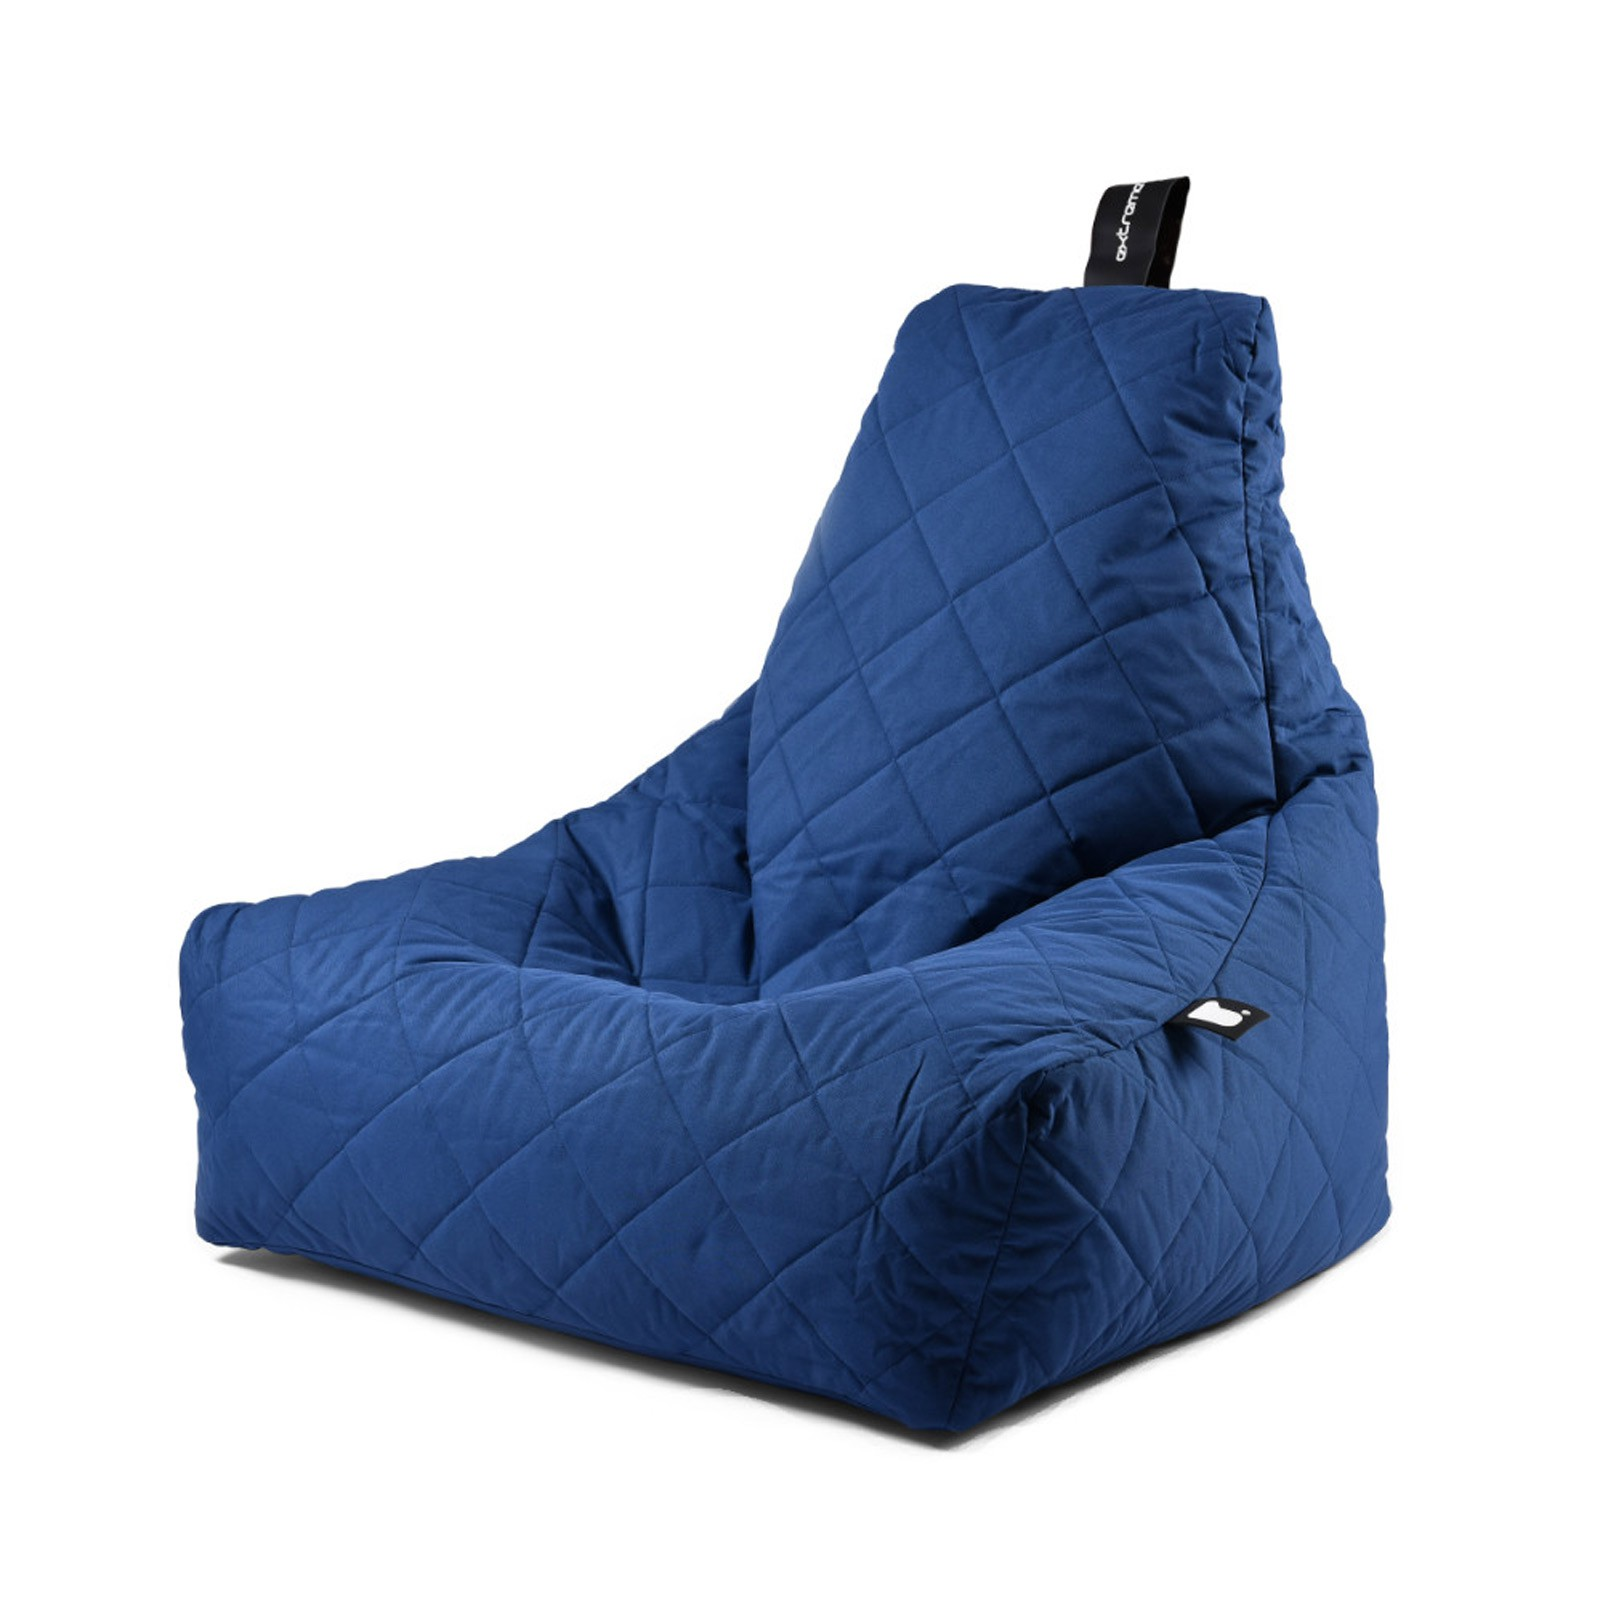 b-bag Extreme Lounging gesteppter Sitzsack Indoor + Outdoor mighty-b Quilted Farbe Royal Blue